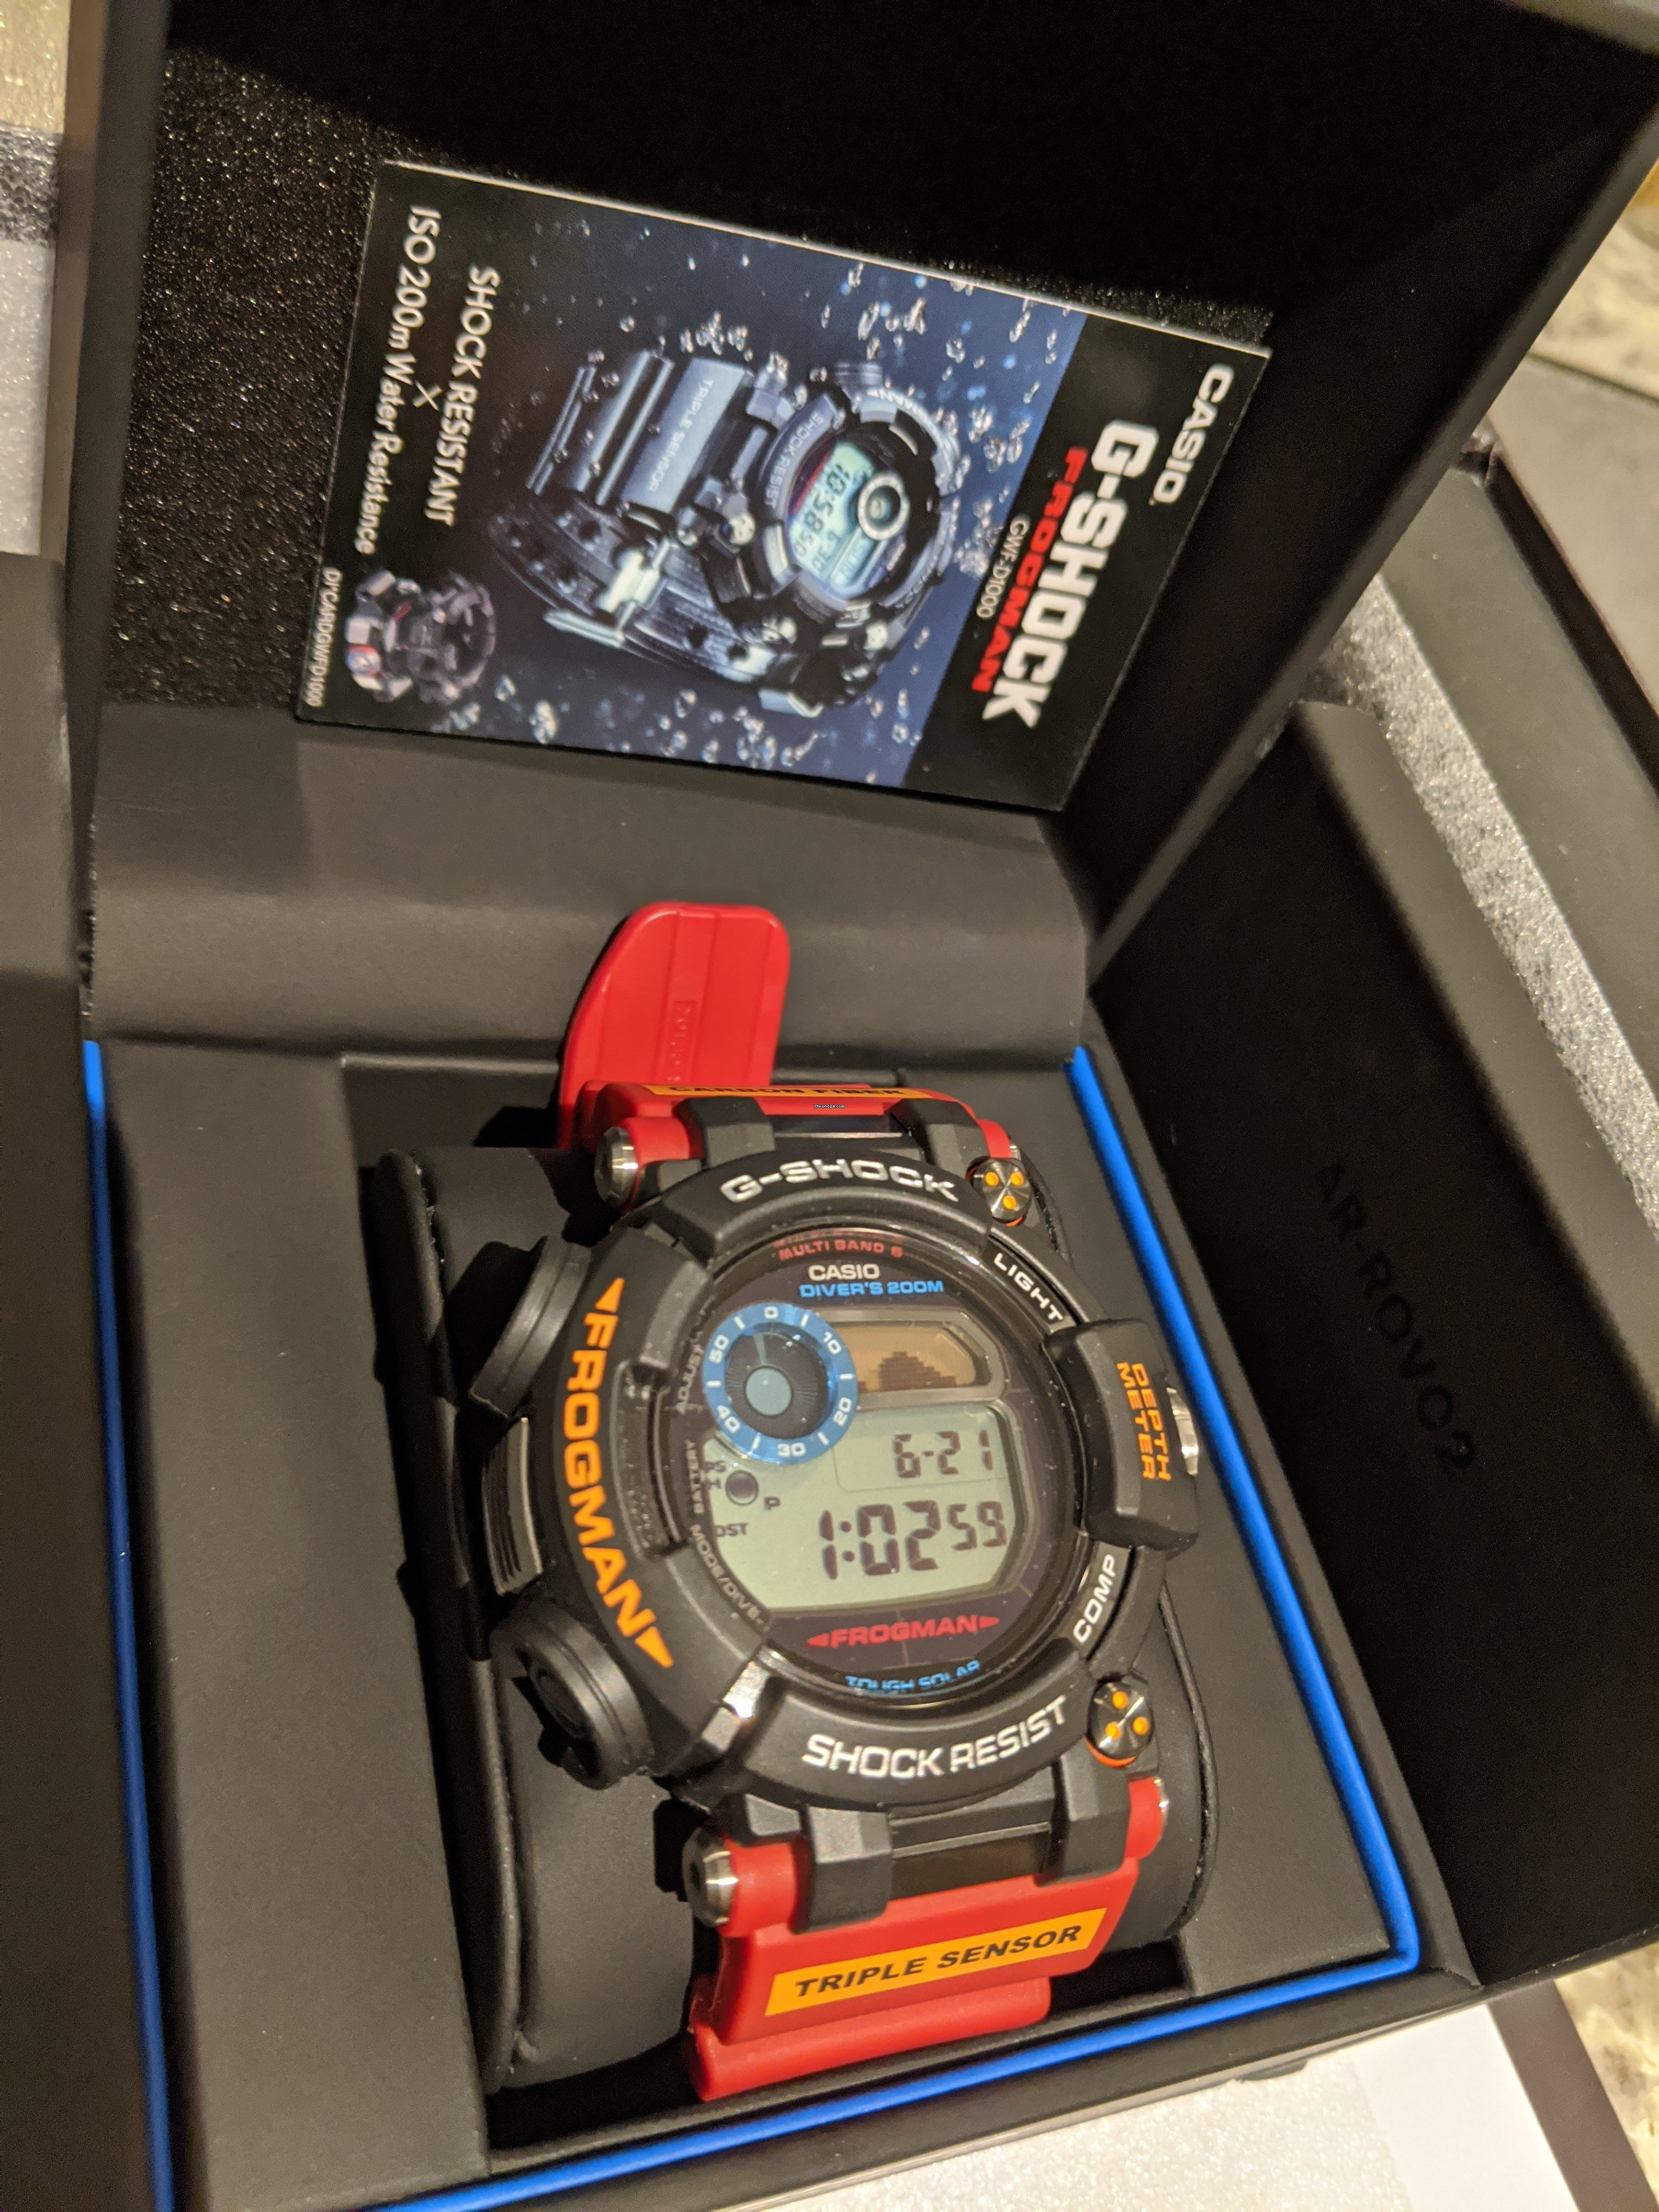 Casio G Shock Frogman Antarctic Research Limited Edition ROV  UKjHO